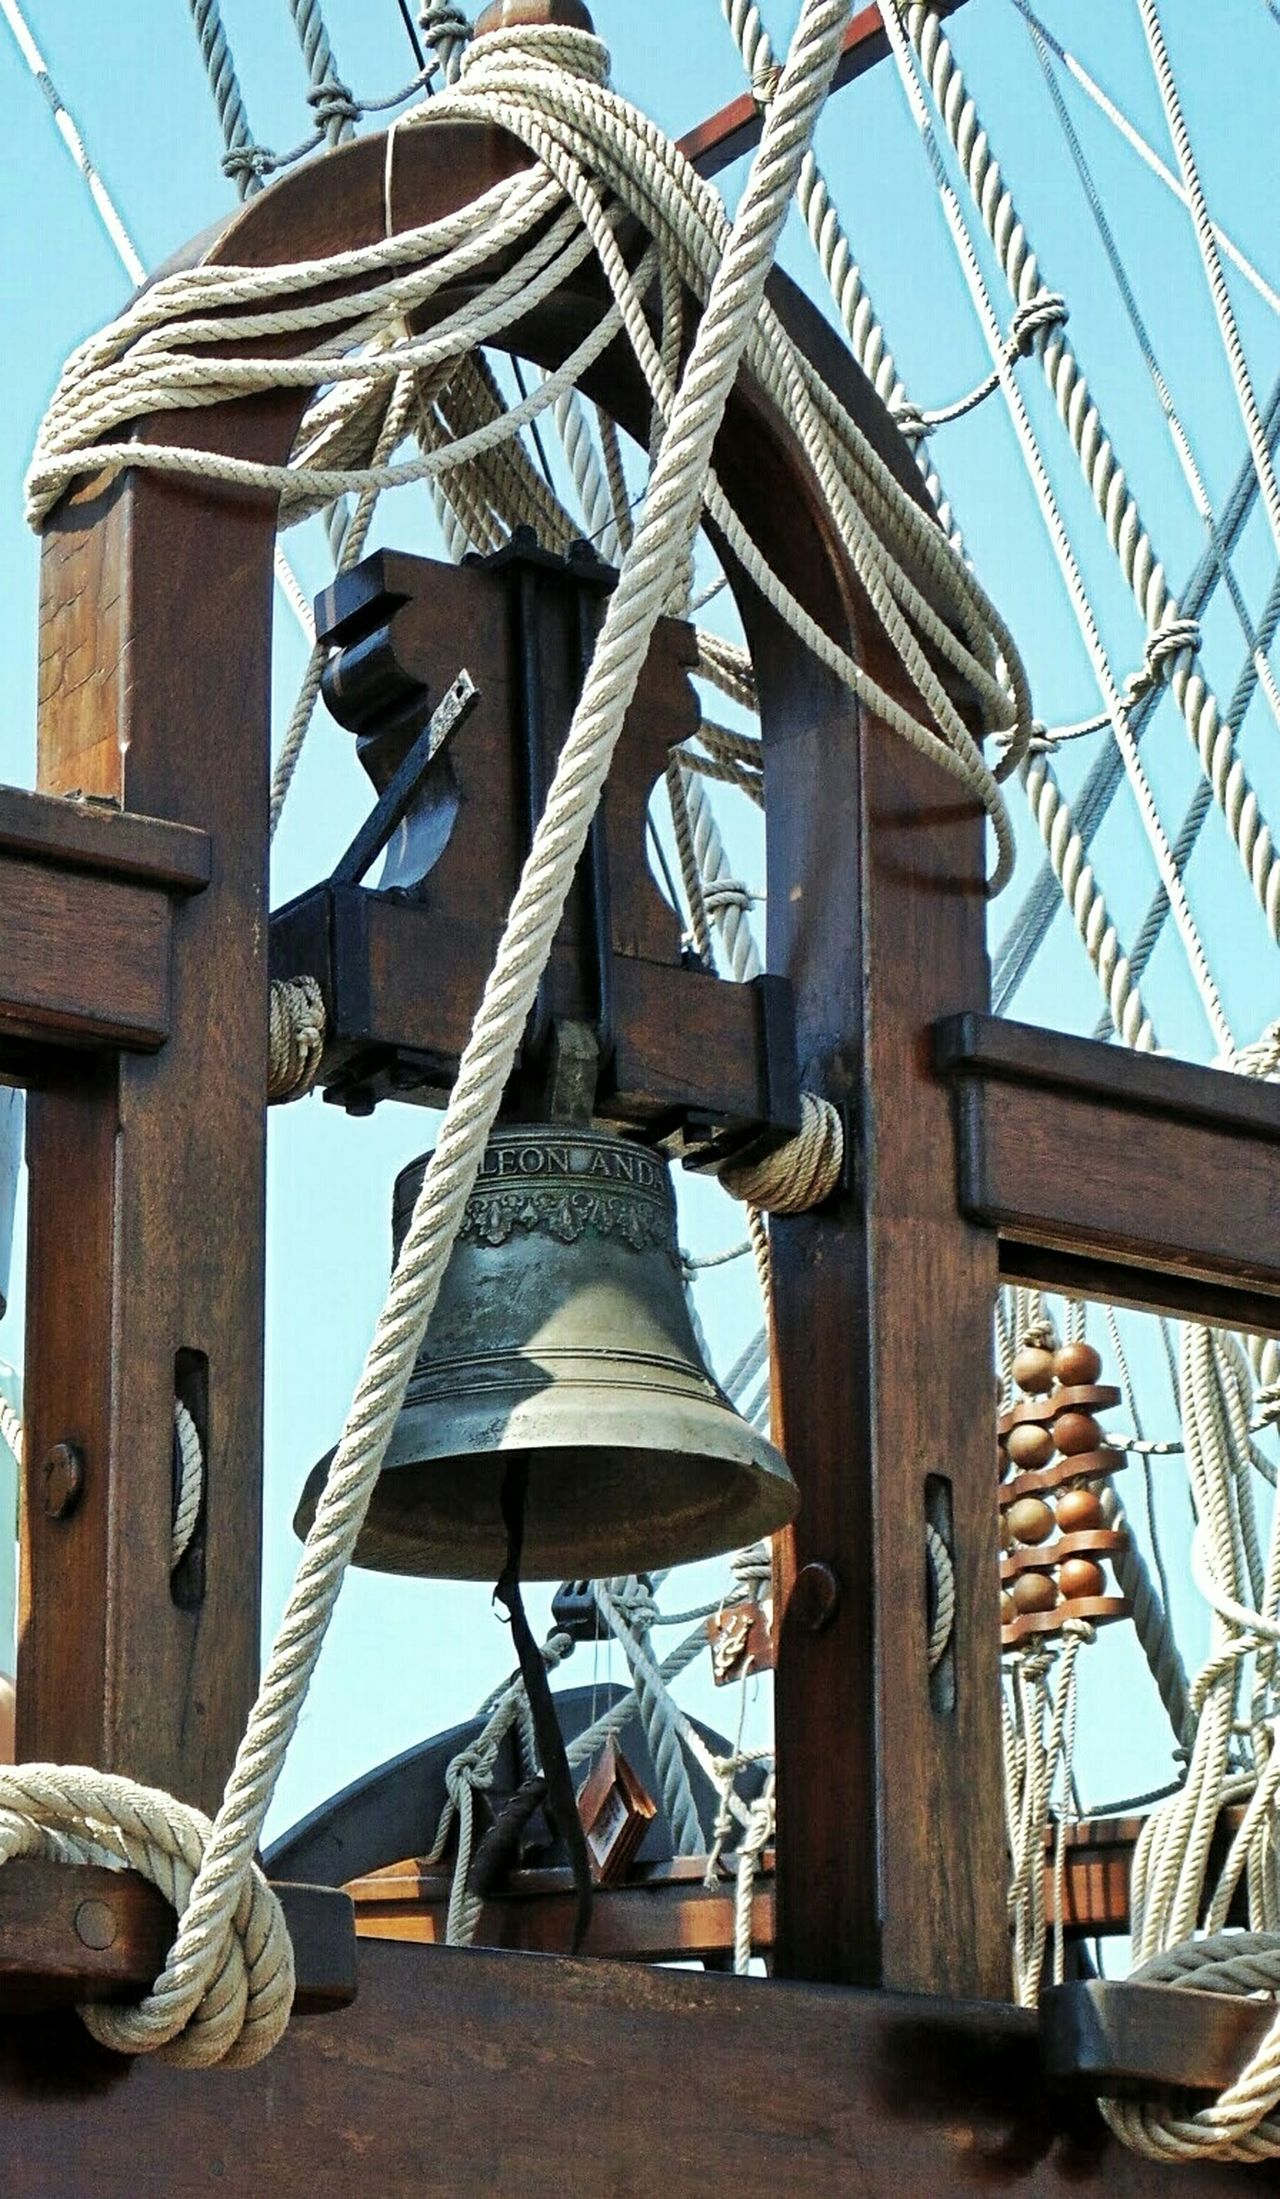 El Galeon's bell Spanish Ship Pirate Ship Ship Bell